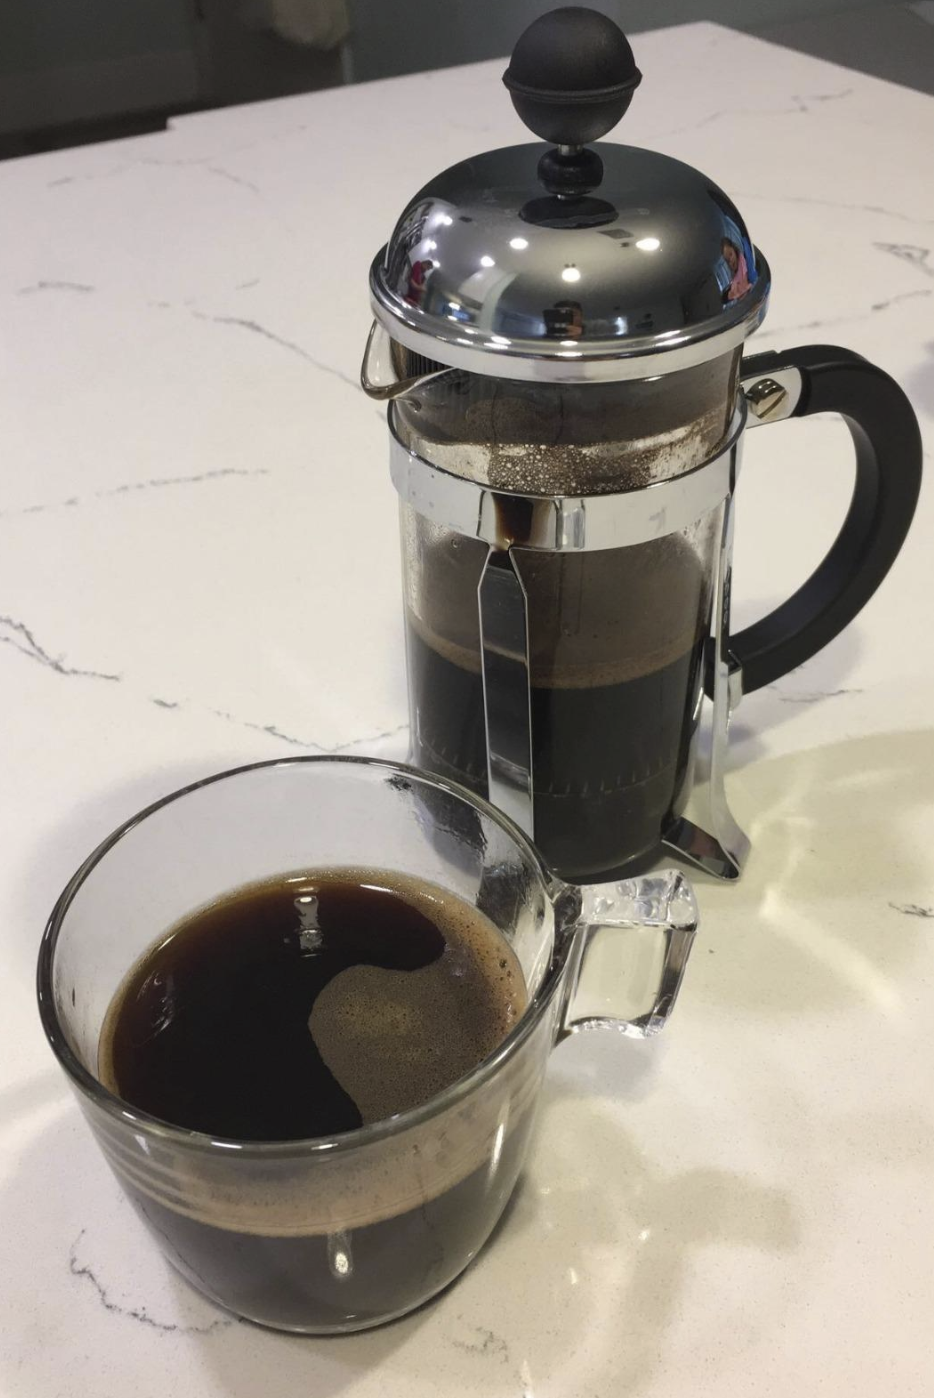 the press coffee maker which is shaped like a tall glass mug with a metal top sitting beside a glass mug of coffee